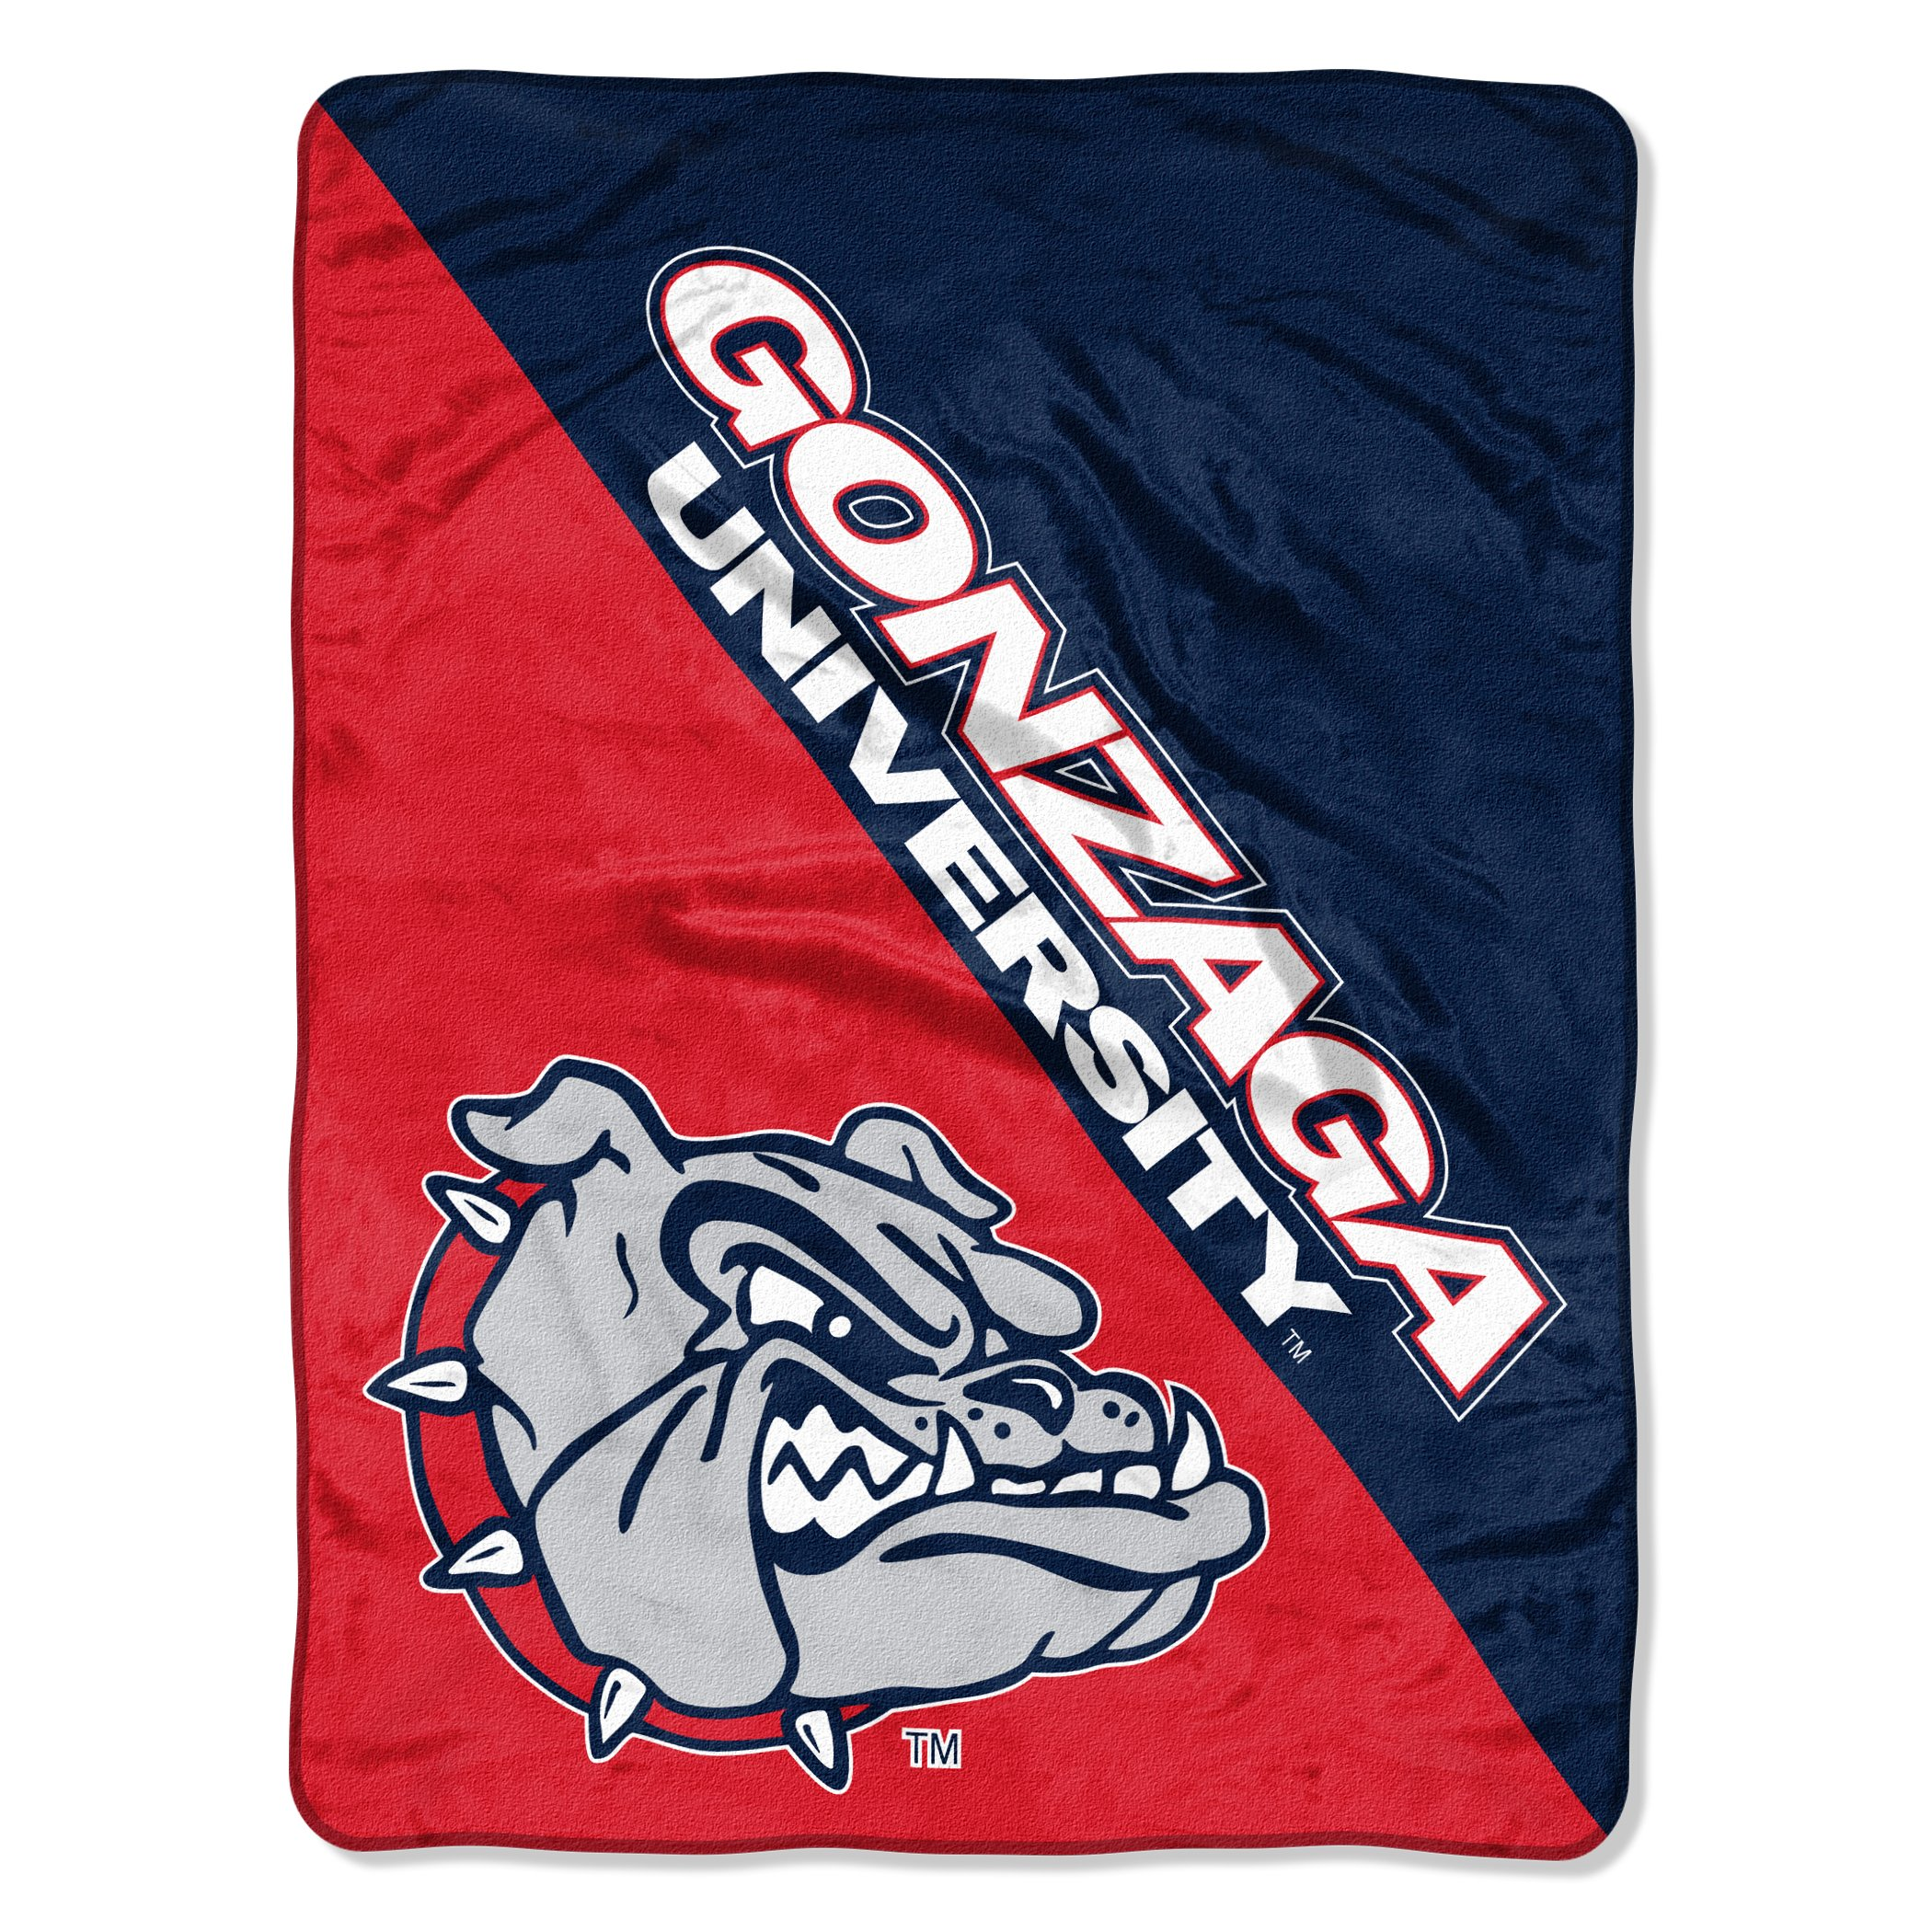 The Northwest Company Officially Licensed NCAA Gonzaga Bulldogs Halftone Micro Raschel Throw Blanket, 46'' x 60'', Multi Color by The Northwest Company